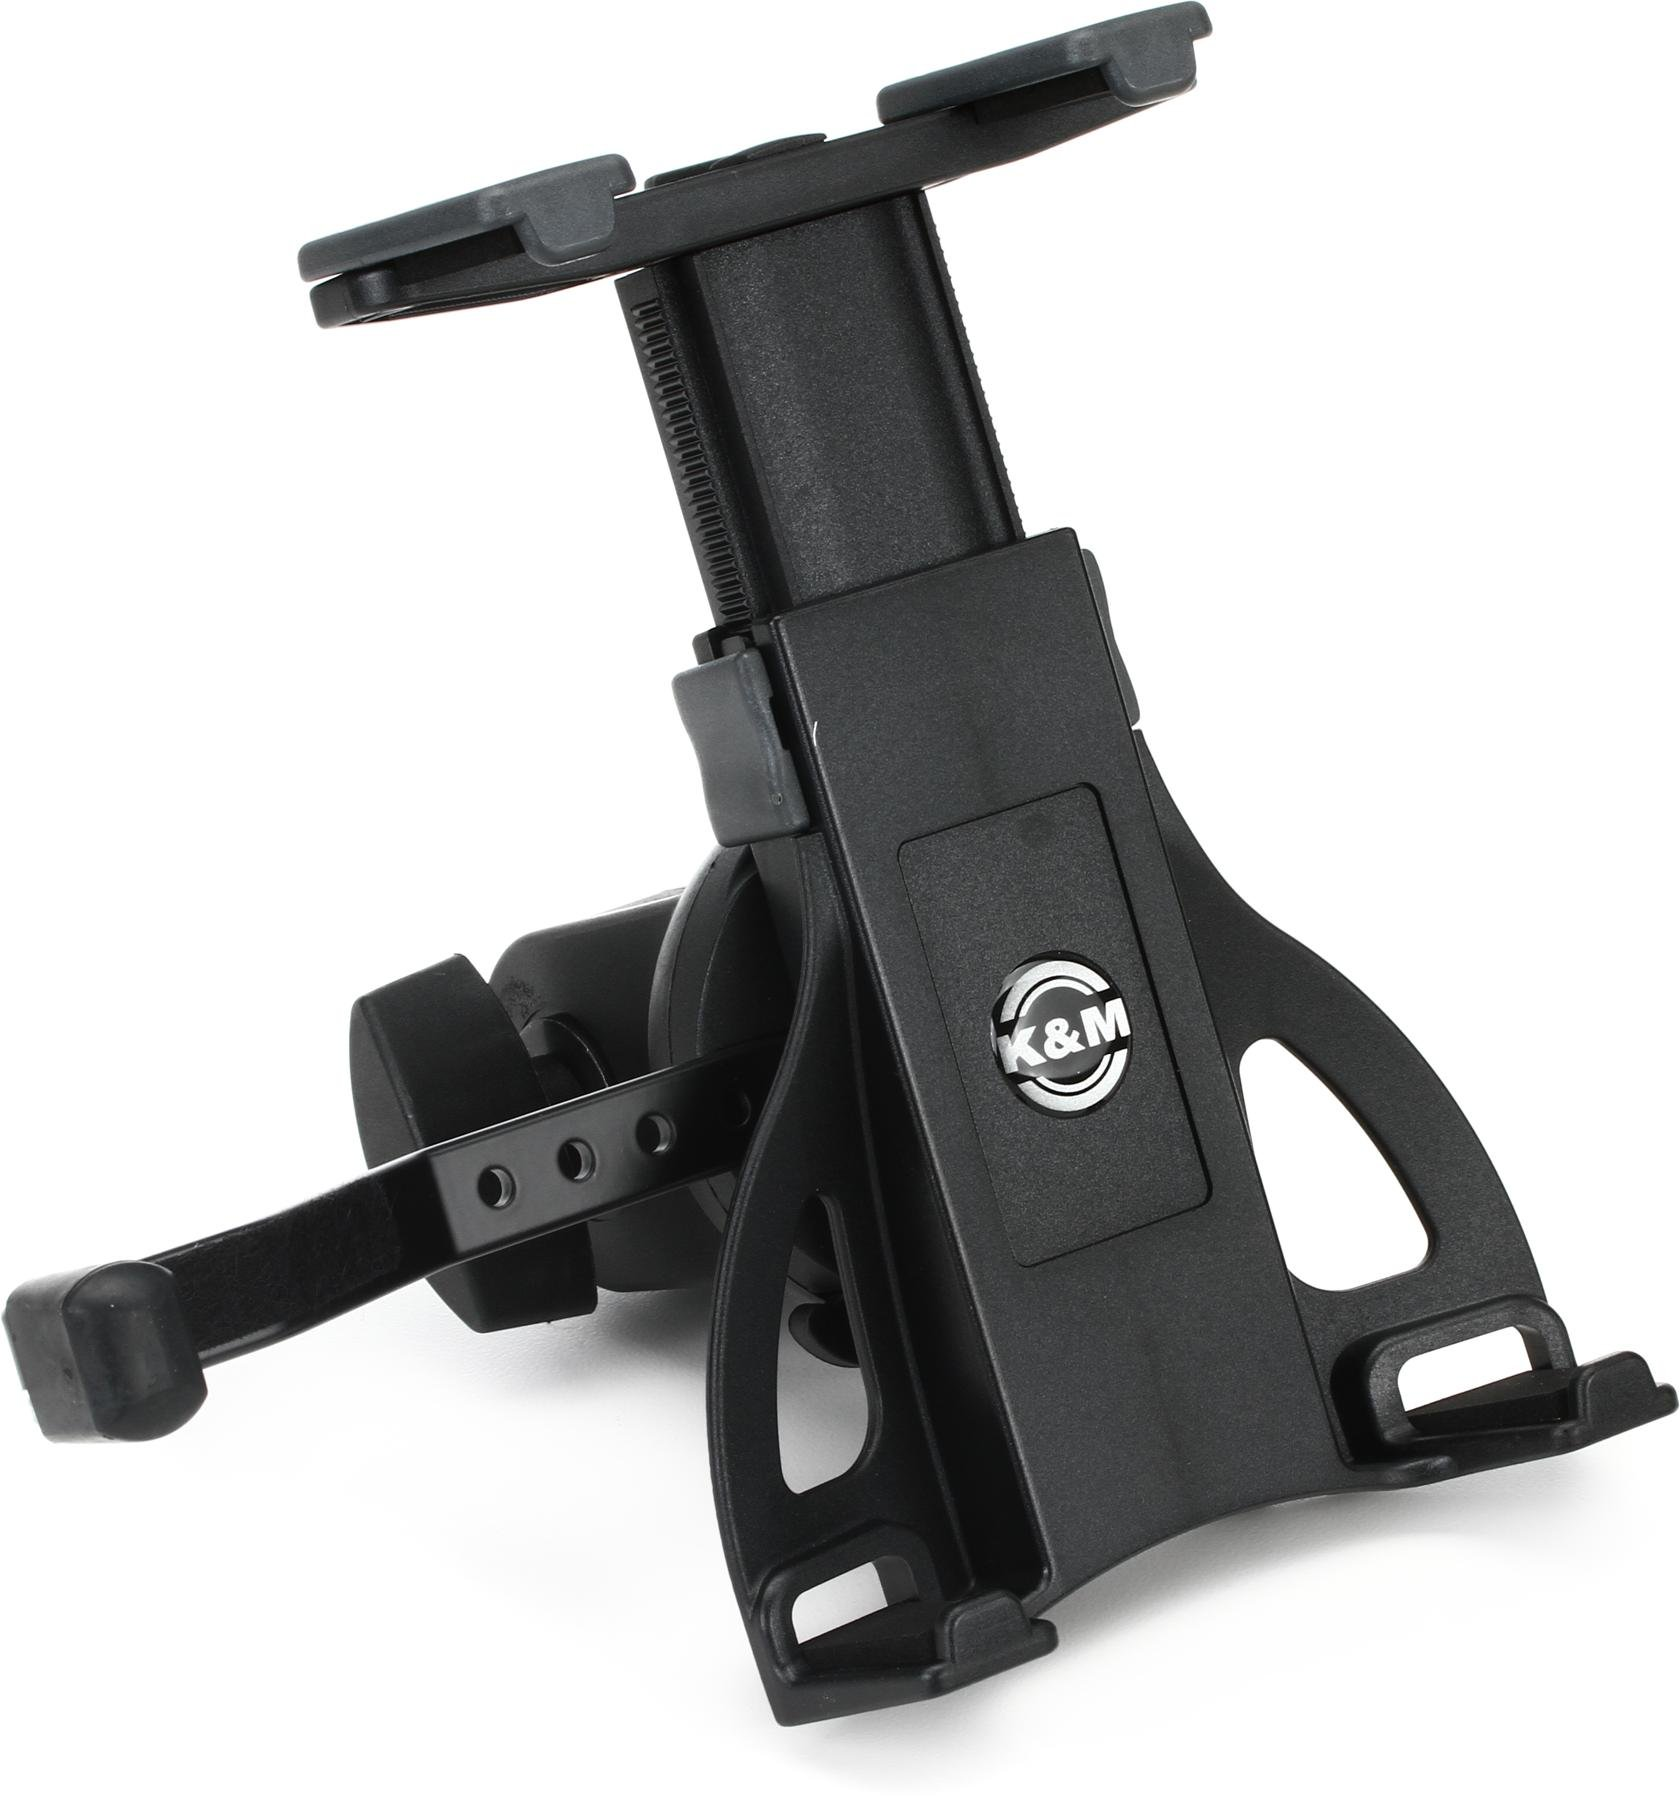 ku0026m km19742 universal tablet holder mic stand thread mount image 1 - Tablet Mount